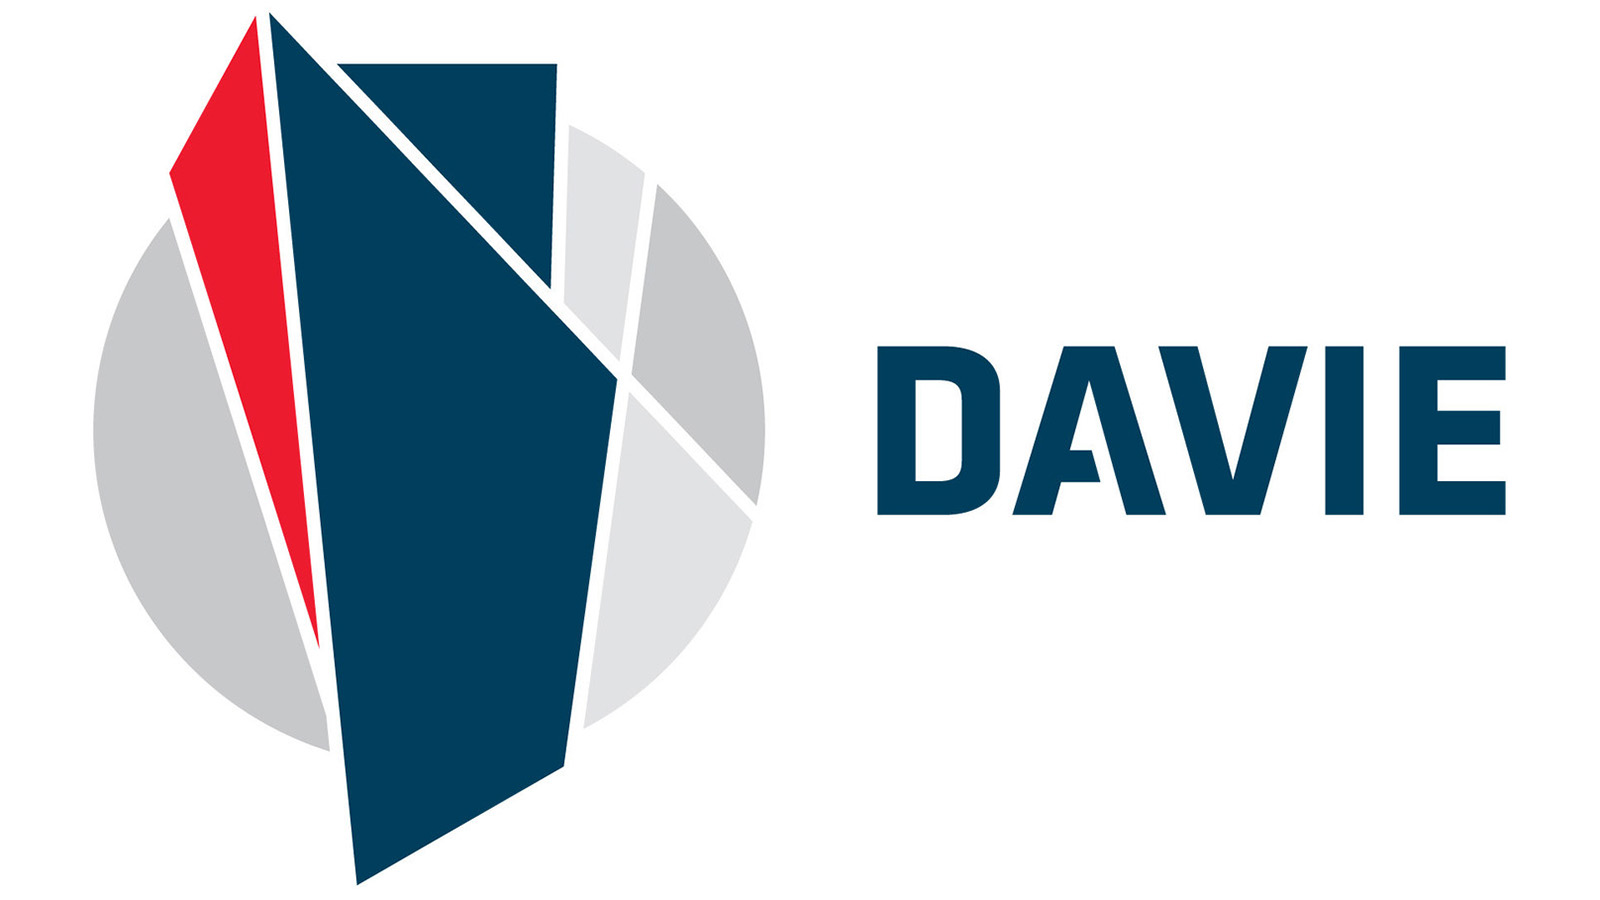 Thanks to Cognibox, Davie can manage contractor compliance rigorously and efficiently